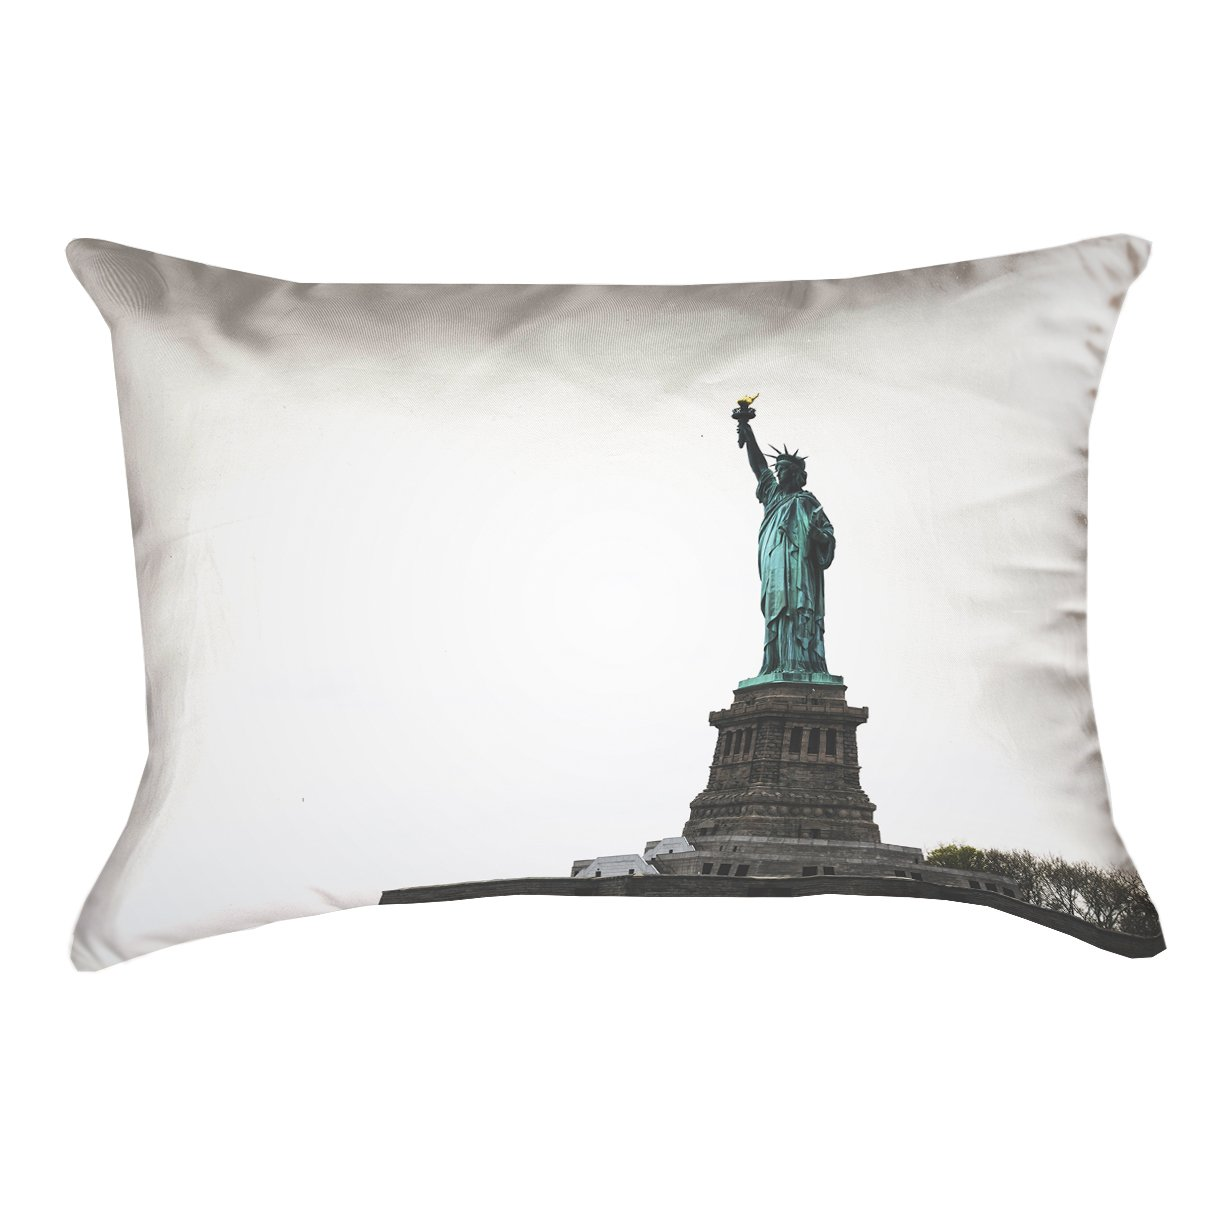 ArtVerse James Pond Statue of Liberty x 20 Pillow-Poly Twill Double Sided Print with Concealed Zipper /& Insert